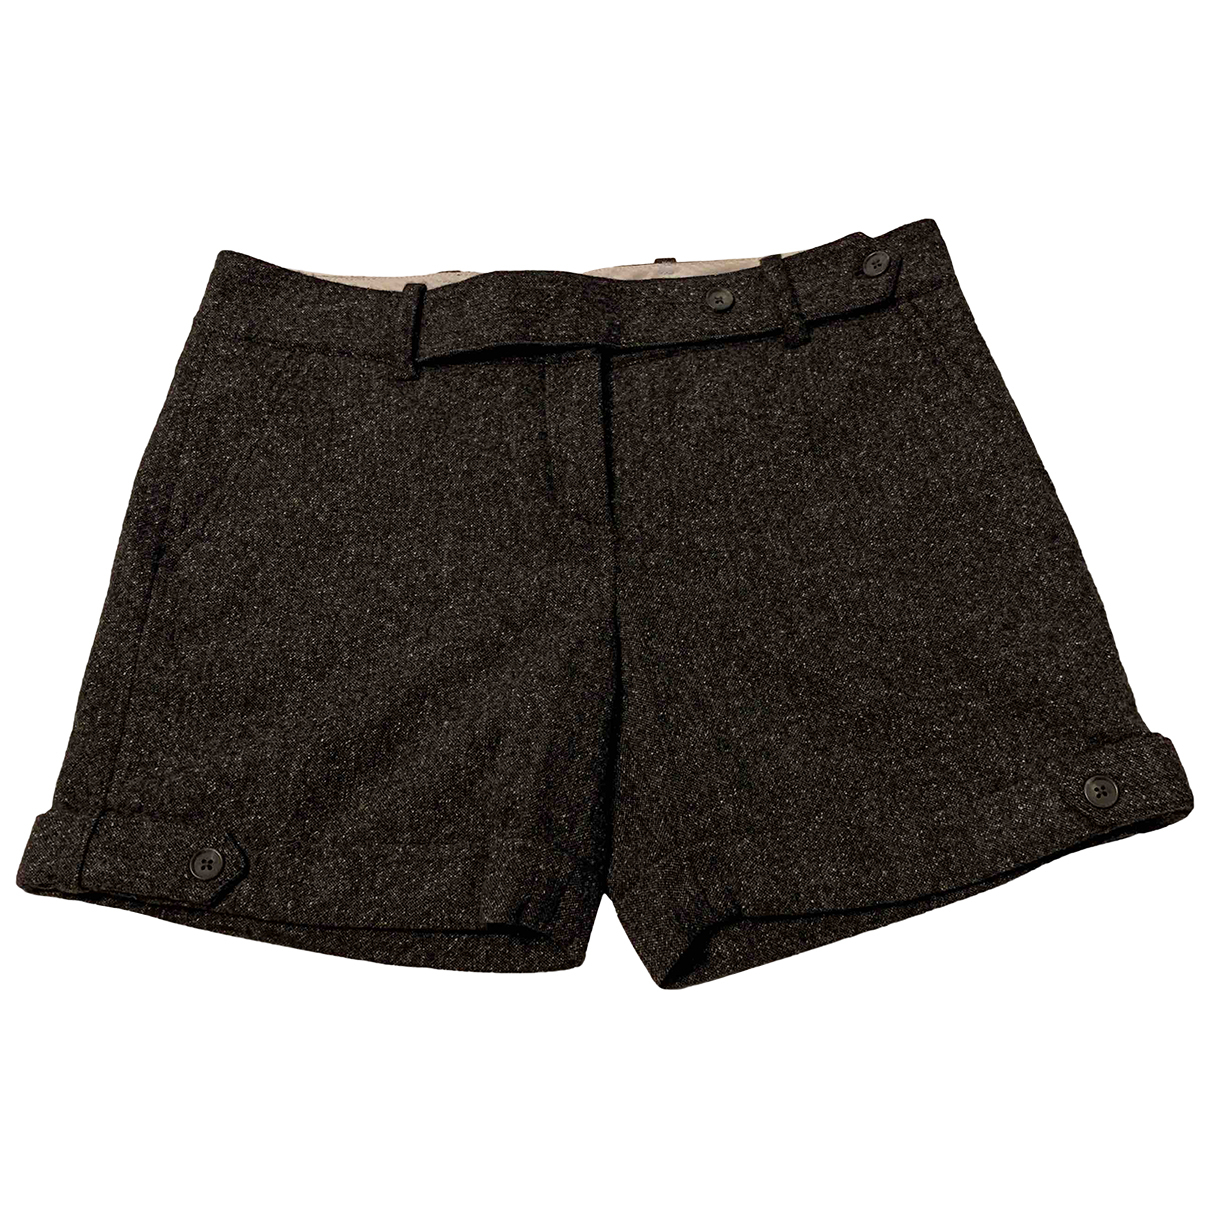 Tommy Hilfiger N Anthracite Wool Shorts for Women 6 US